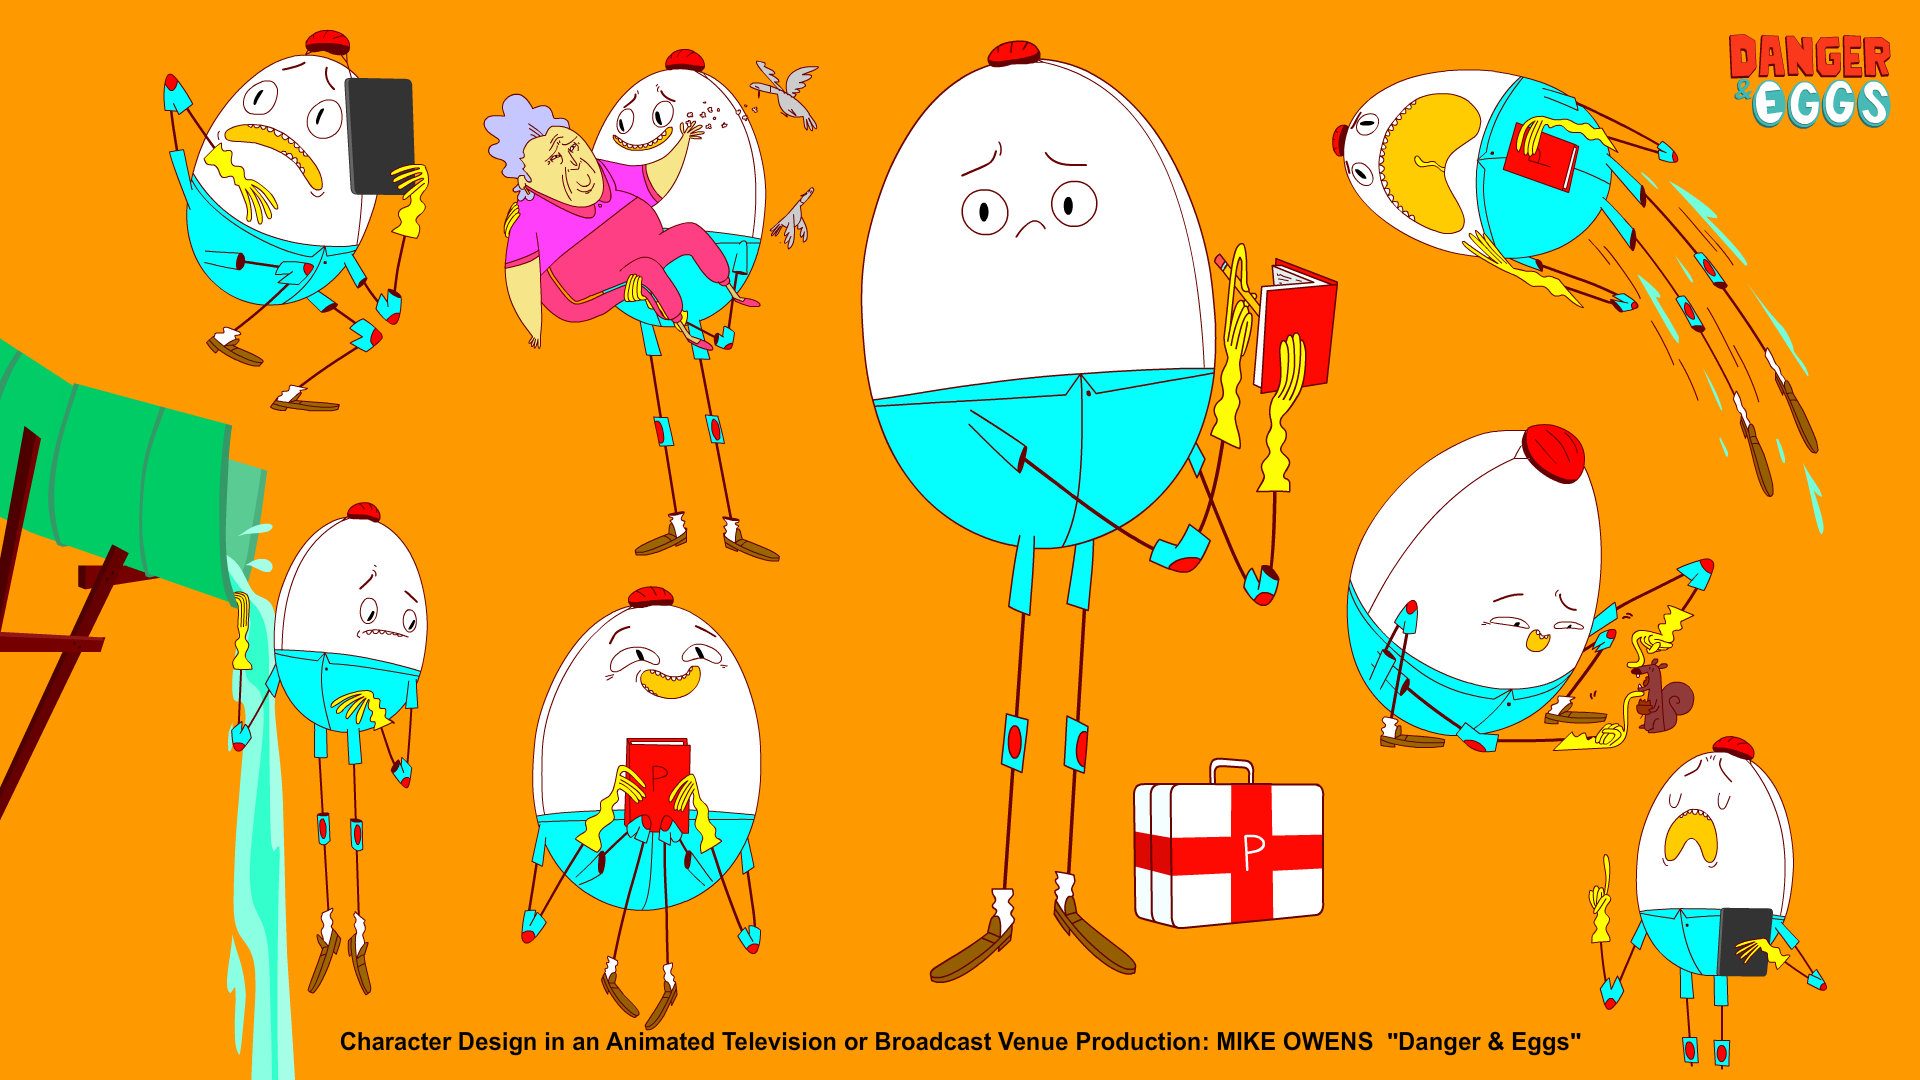 PHILLIP the SAFETY EGG has been in my brain for a long time. So excited that he exists in the world of cartoons!